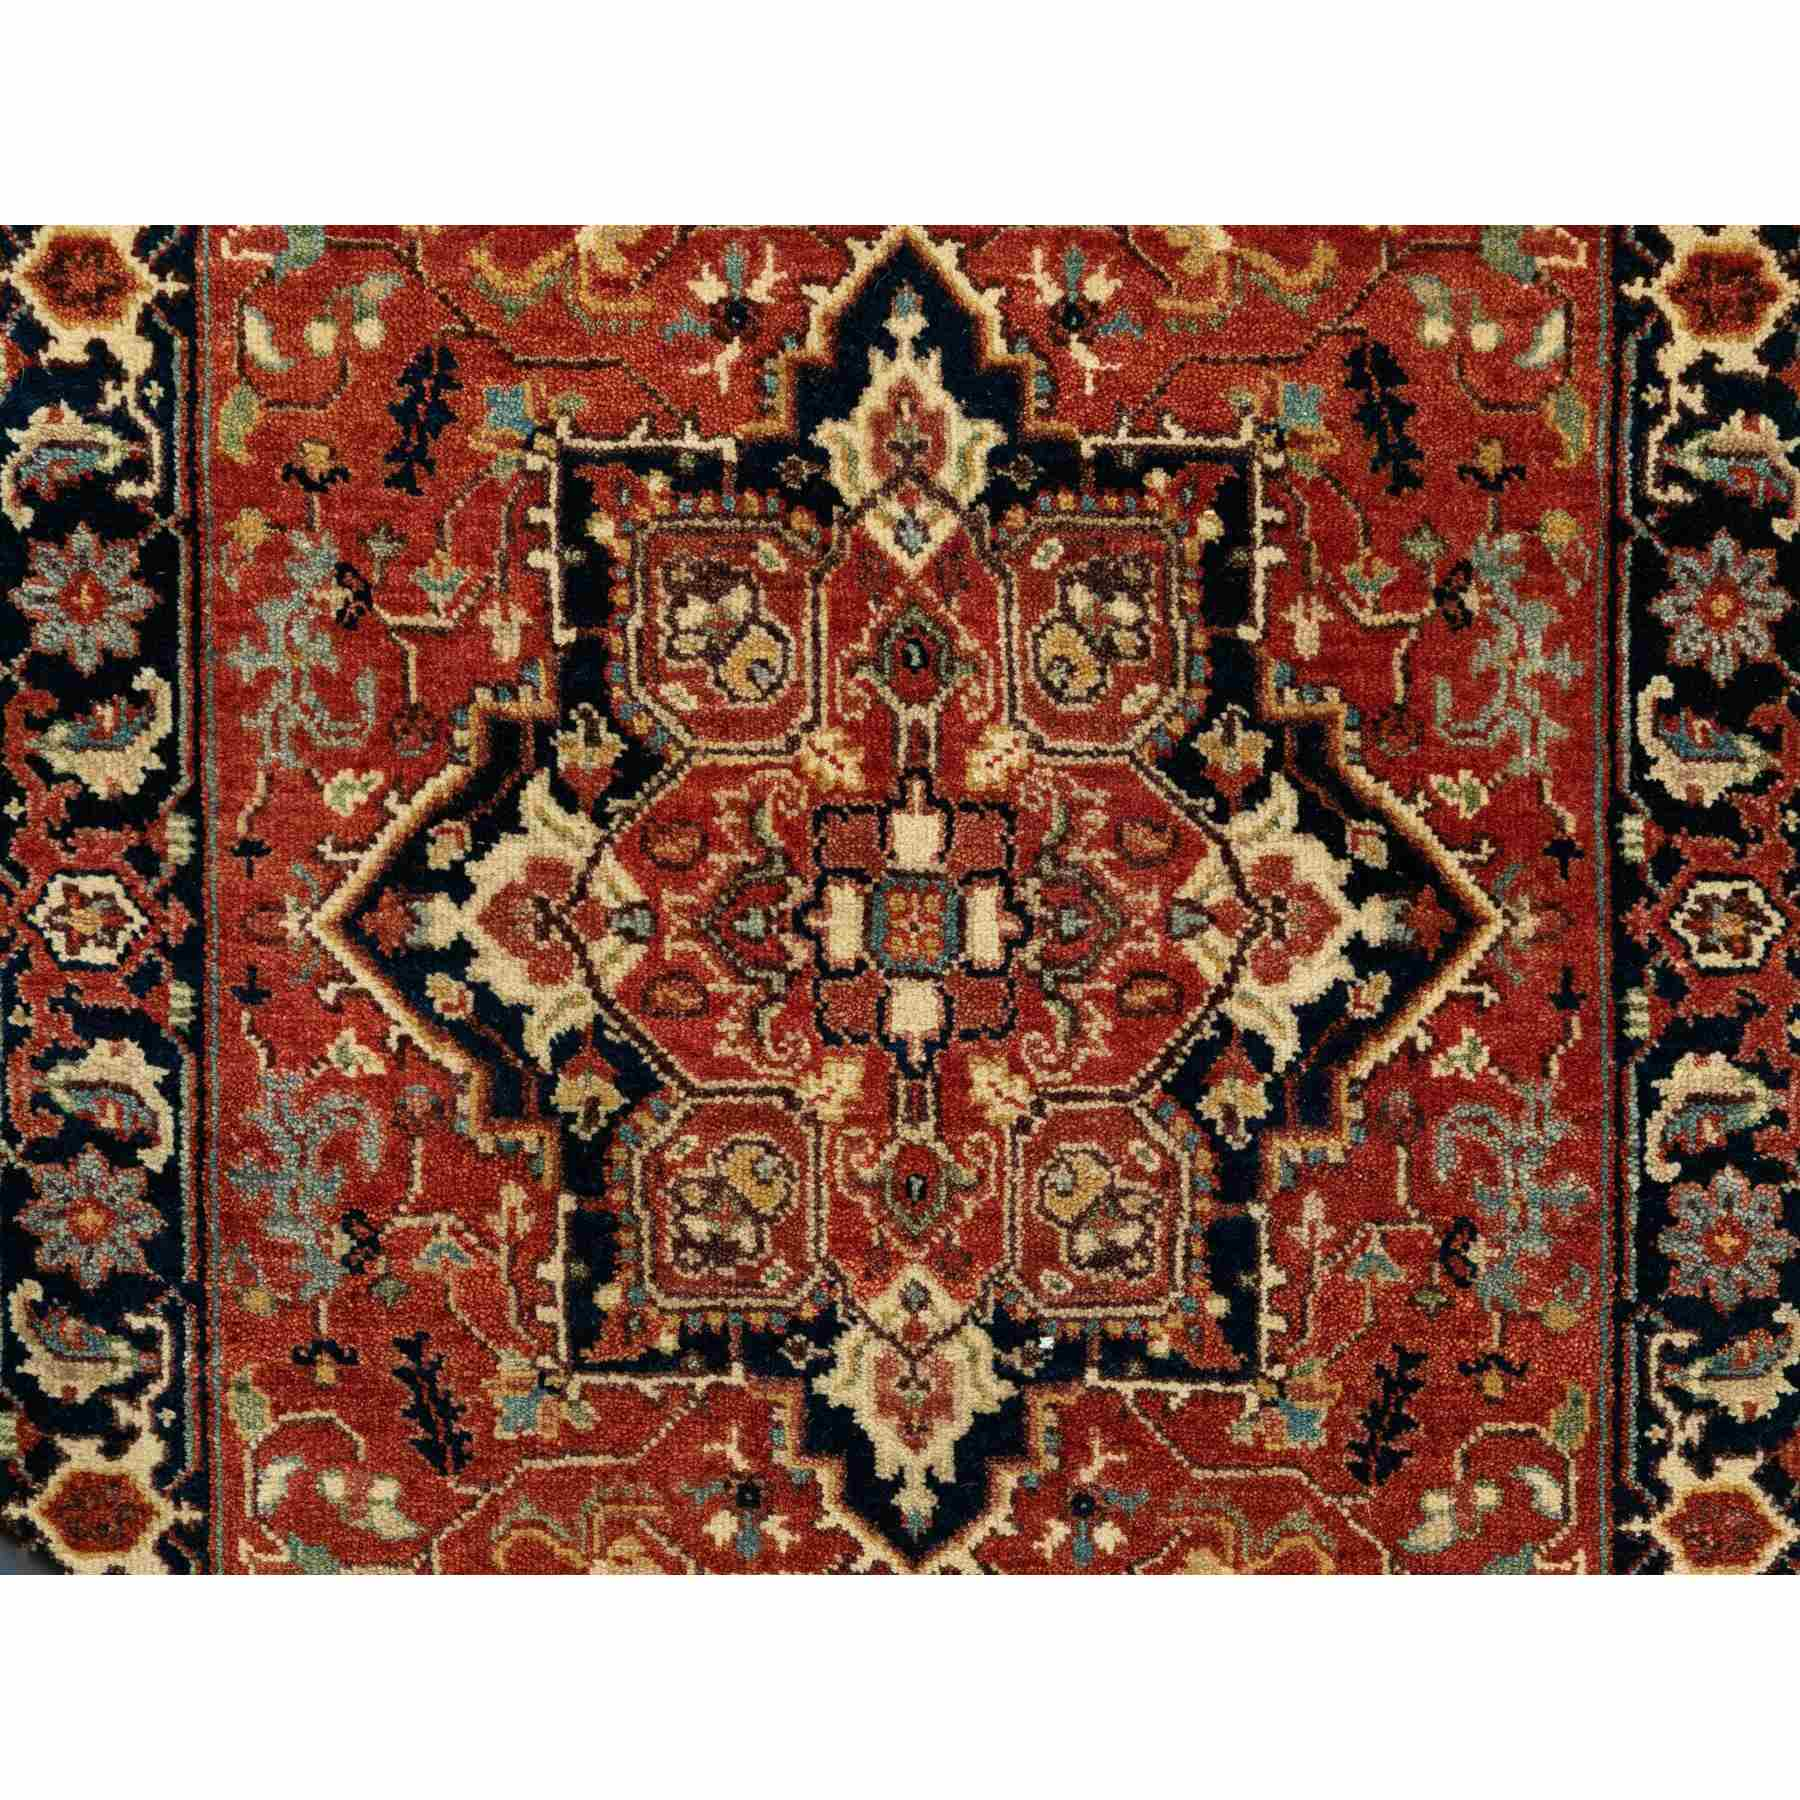 Heriz-Hand-Knotted-Rug-310050